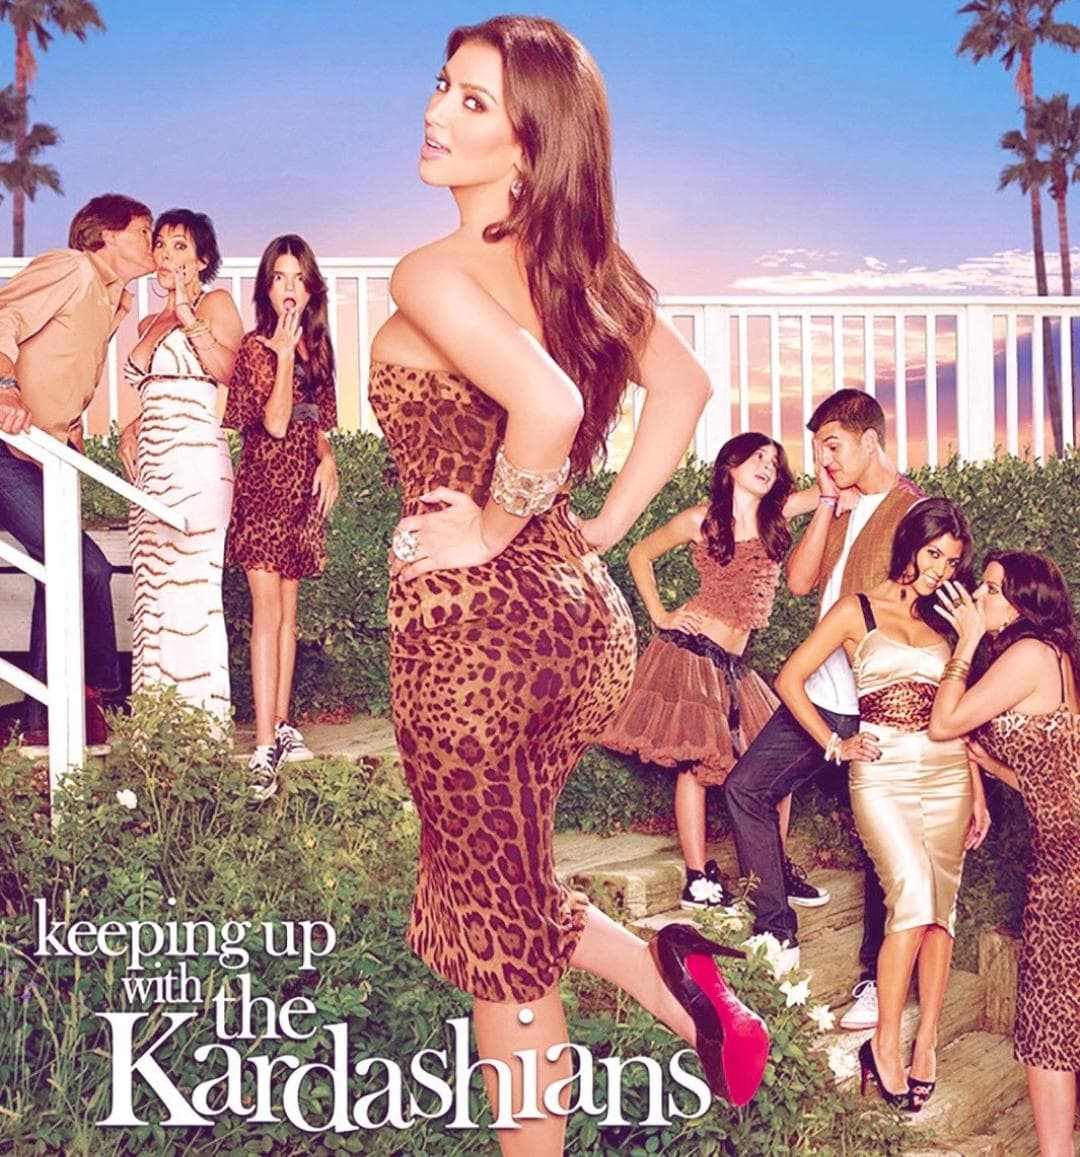 'Keeping Up With The Kardashians' llega a su fin.